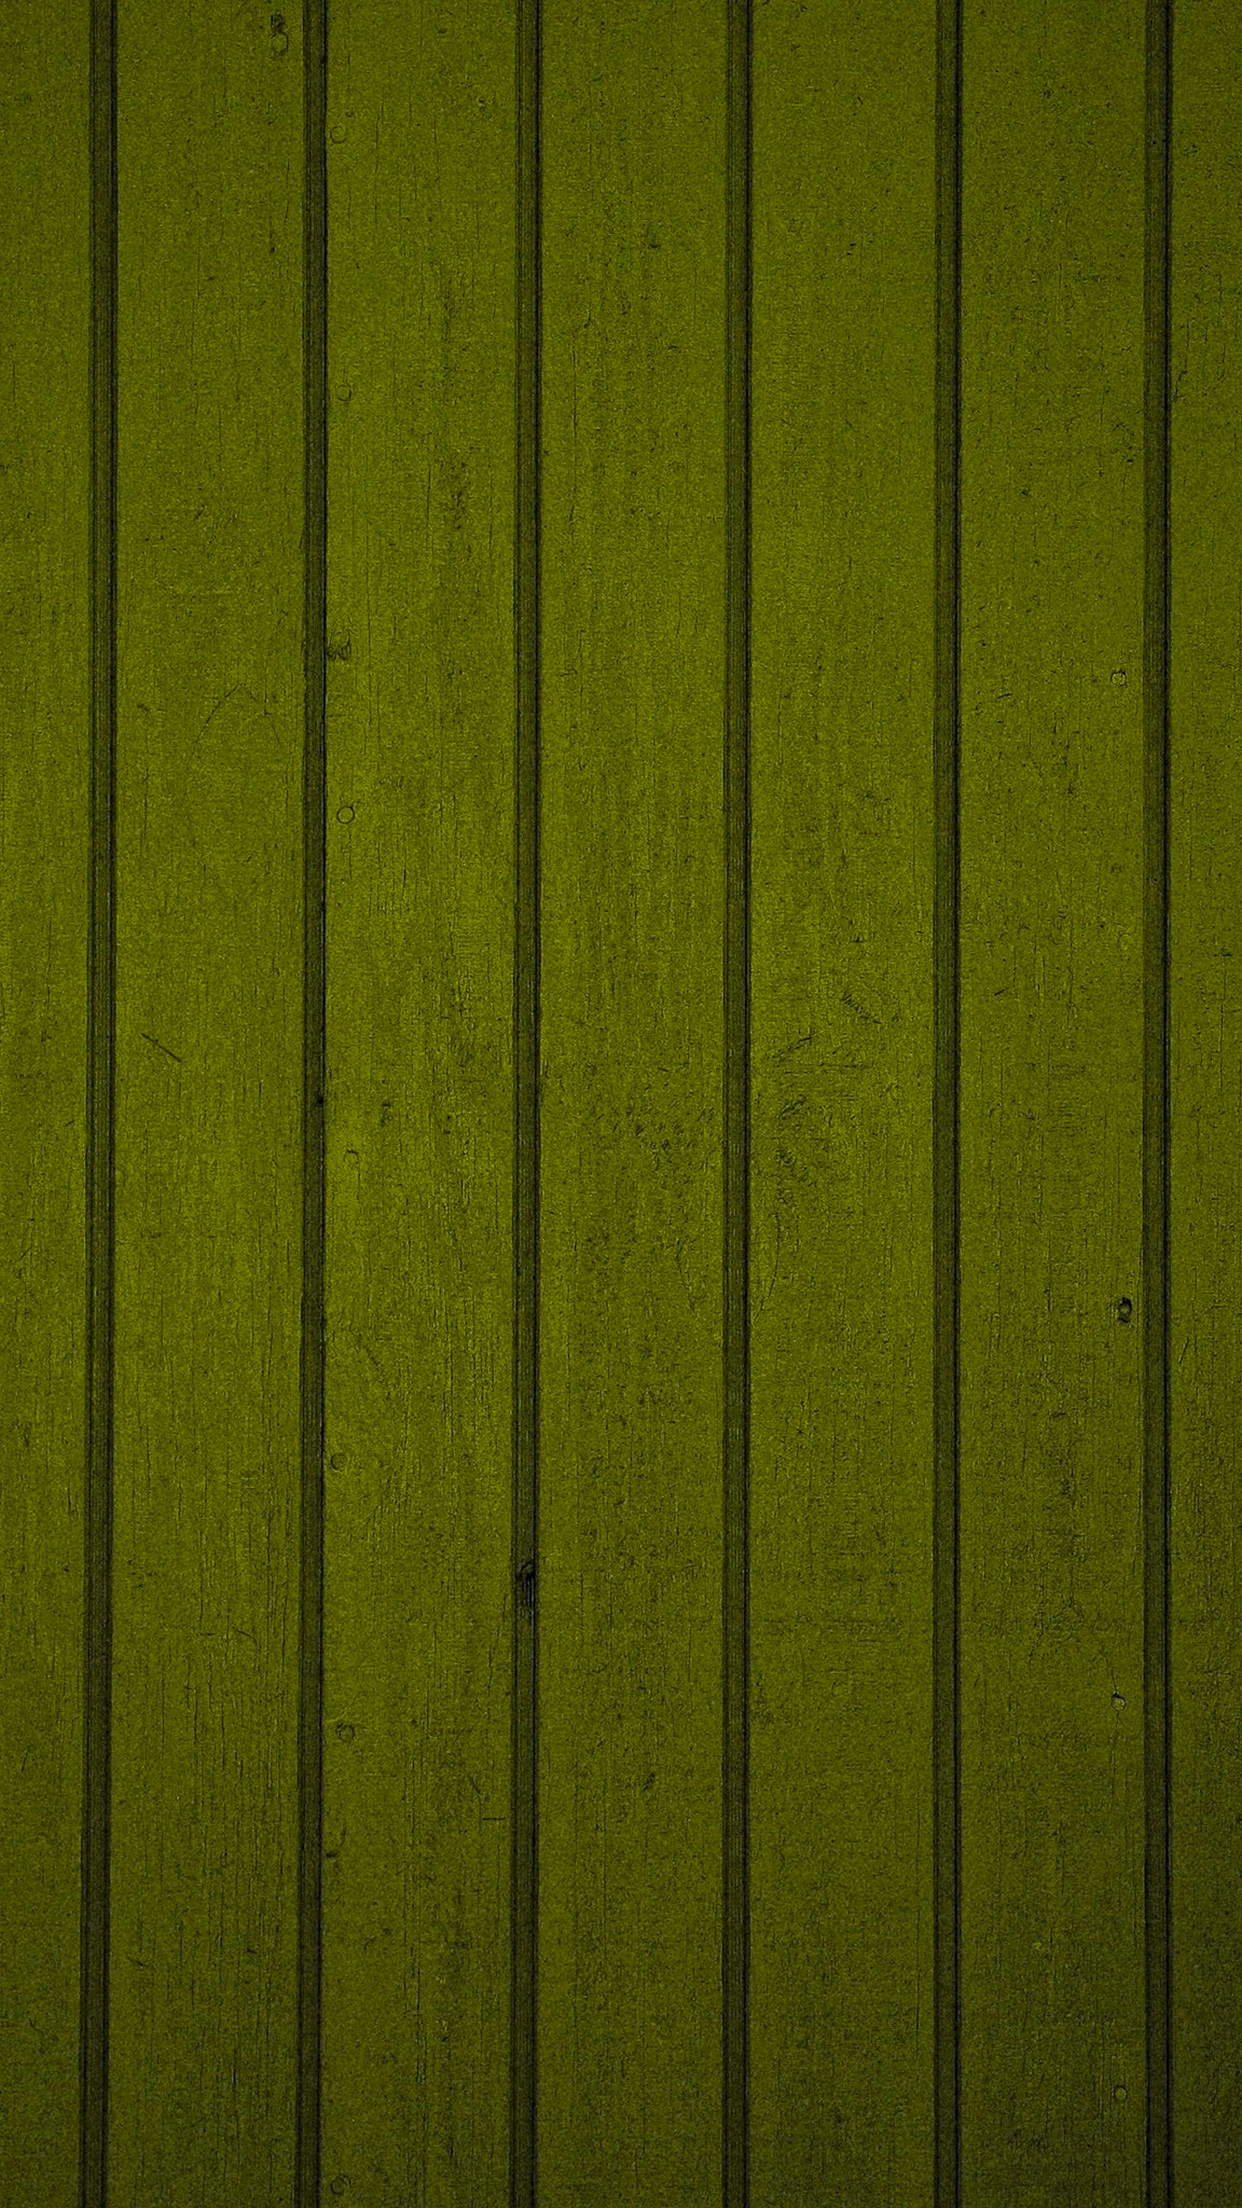 Painted Olive Lumber 3Wallpapers iPhone Parallax Painted Olive Lumber